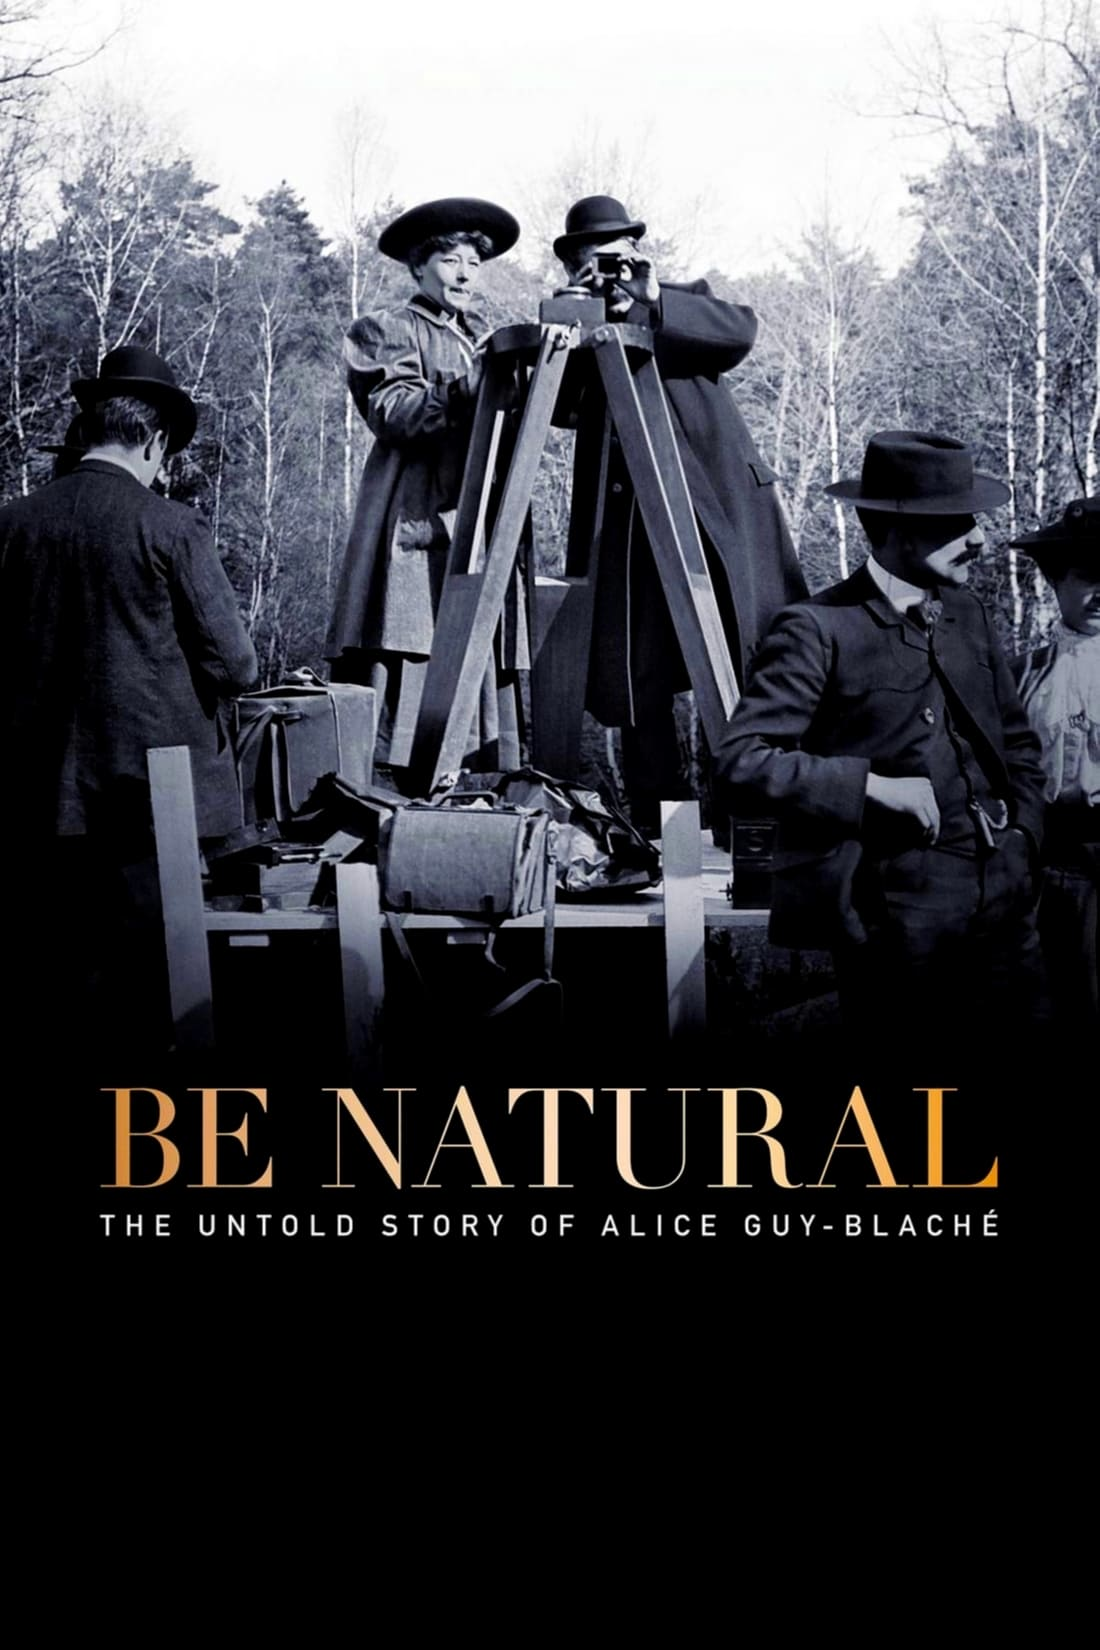 Be Natural, l'histoire cachée d'Alice Guy-Blache